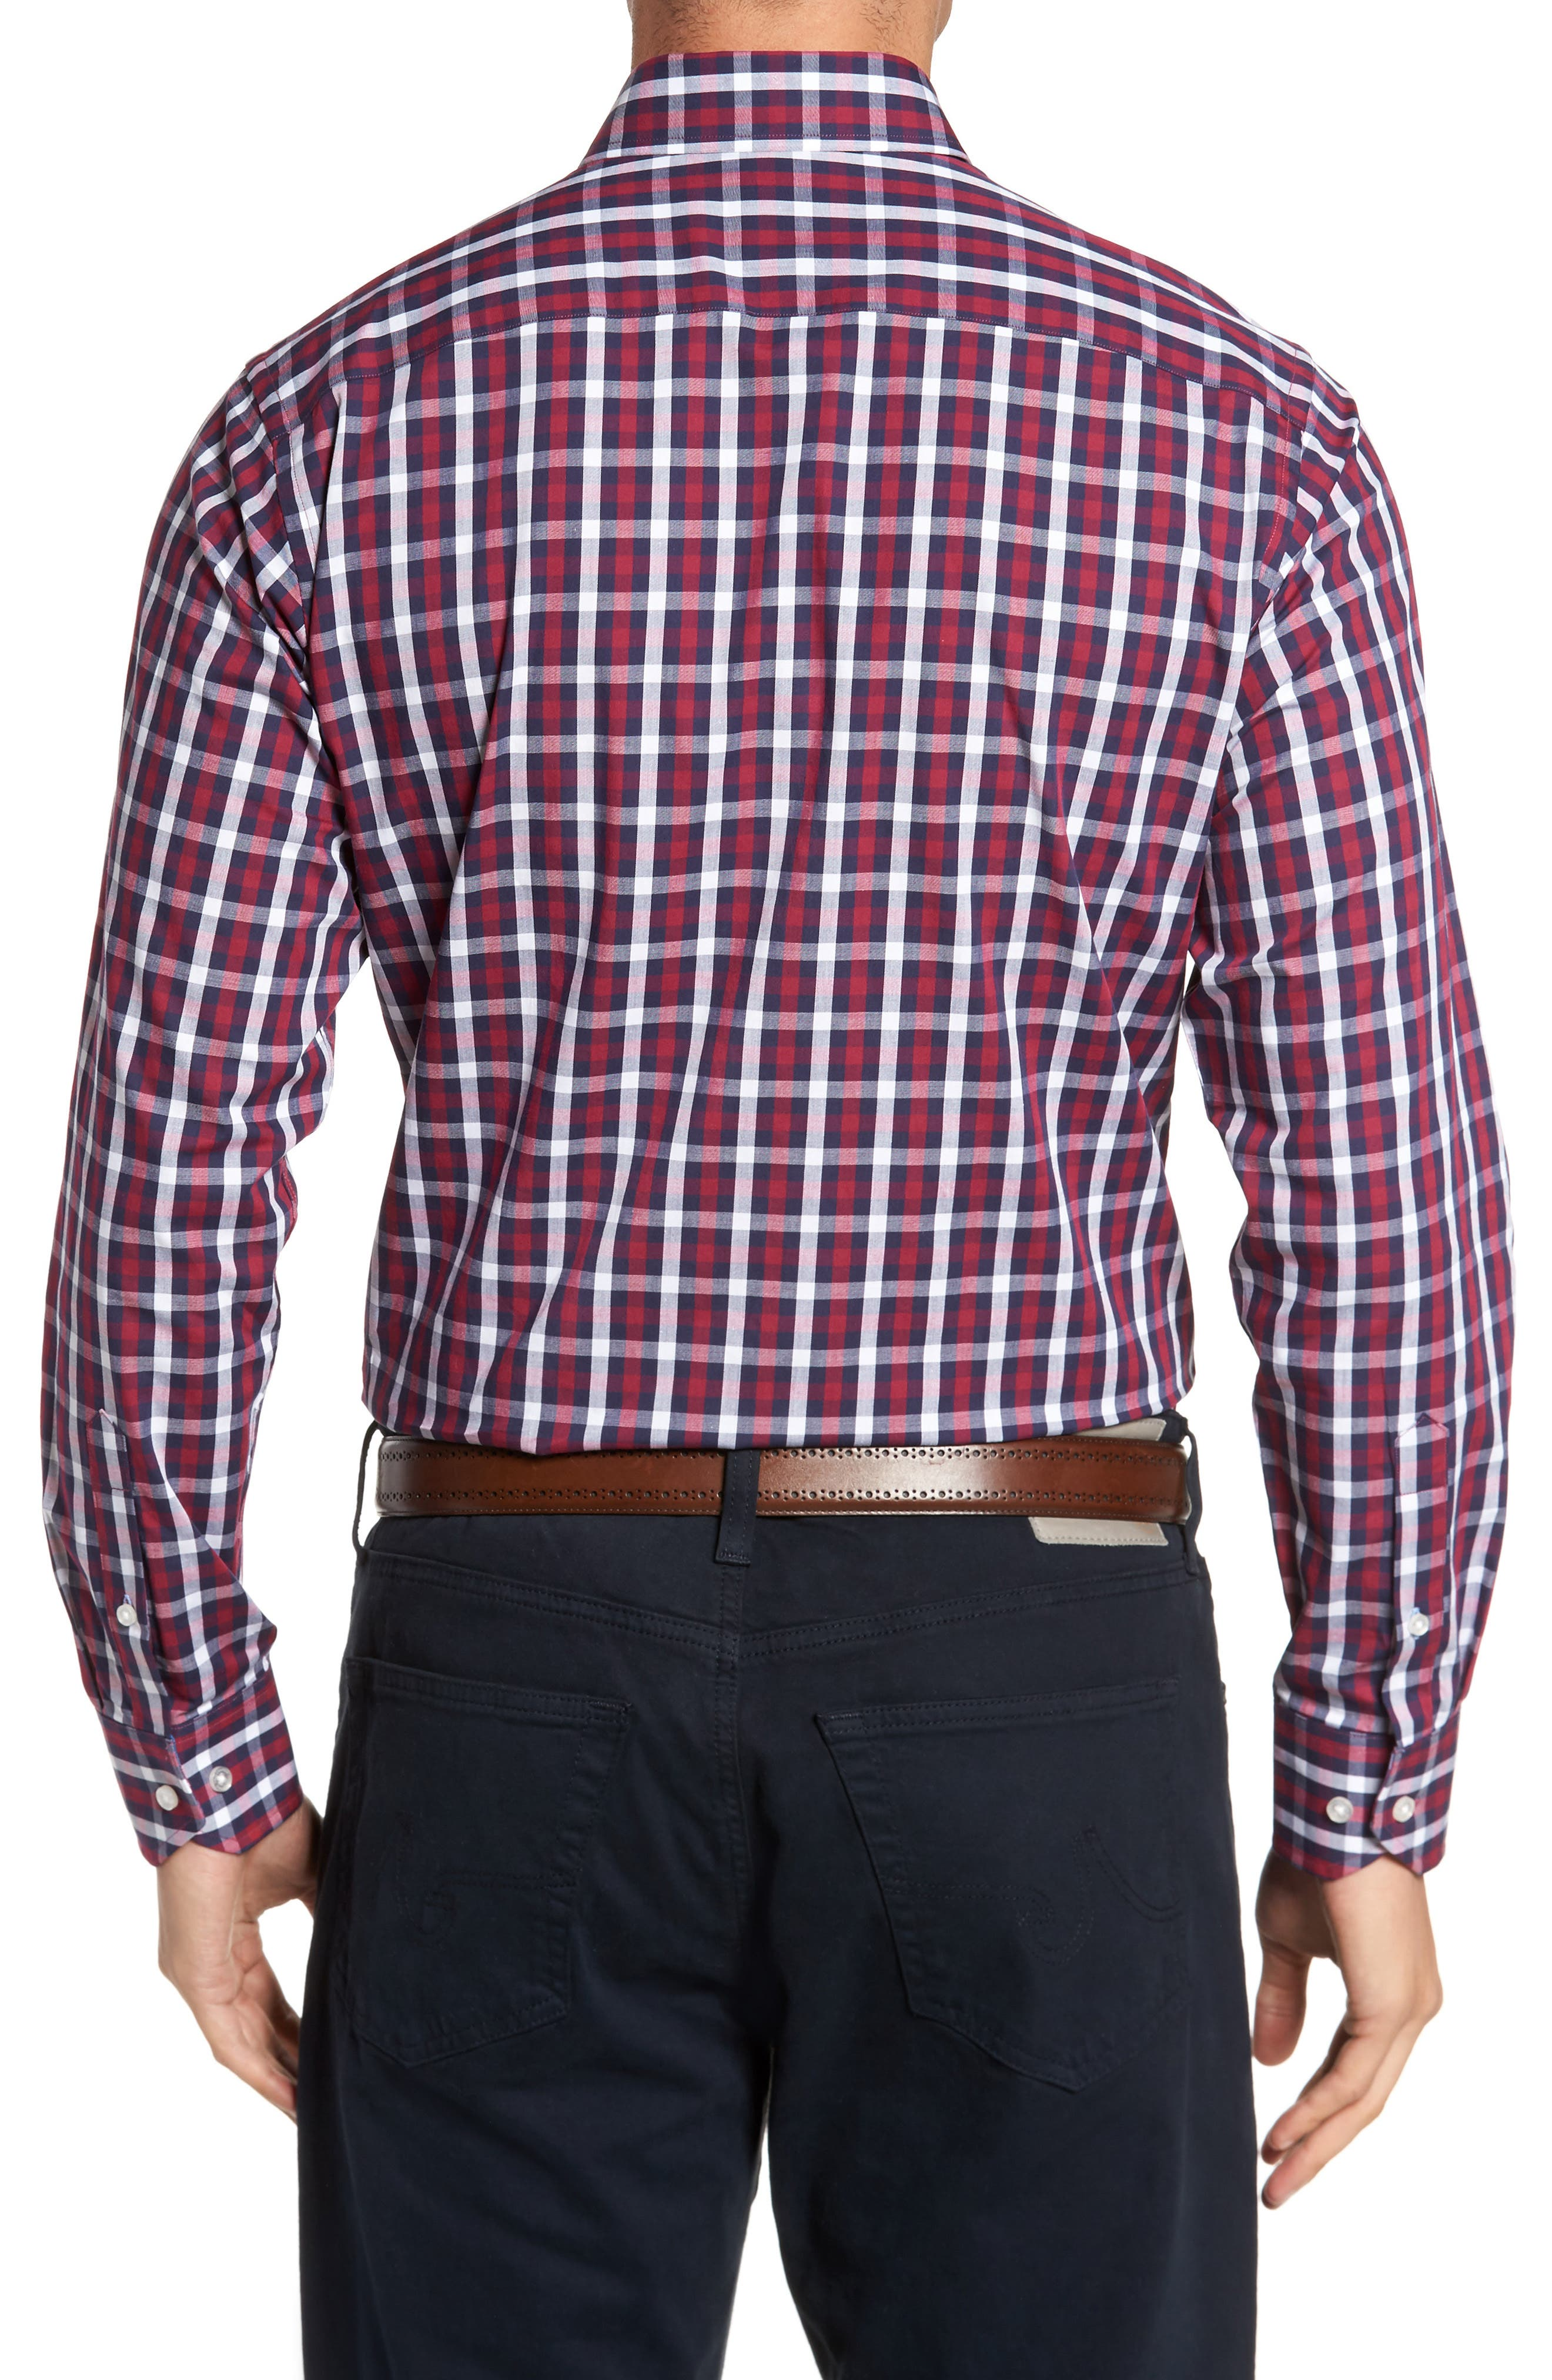 Covington Check Sport Shirt,                             Alternate thumbnail 2, color,                             617